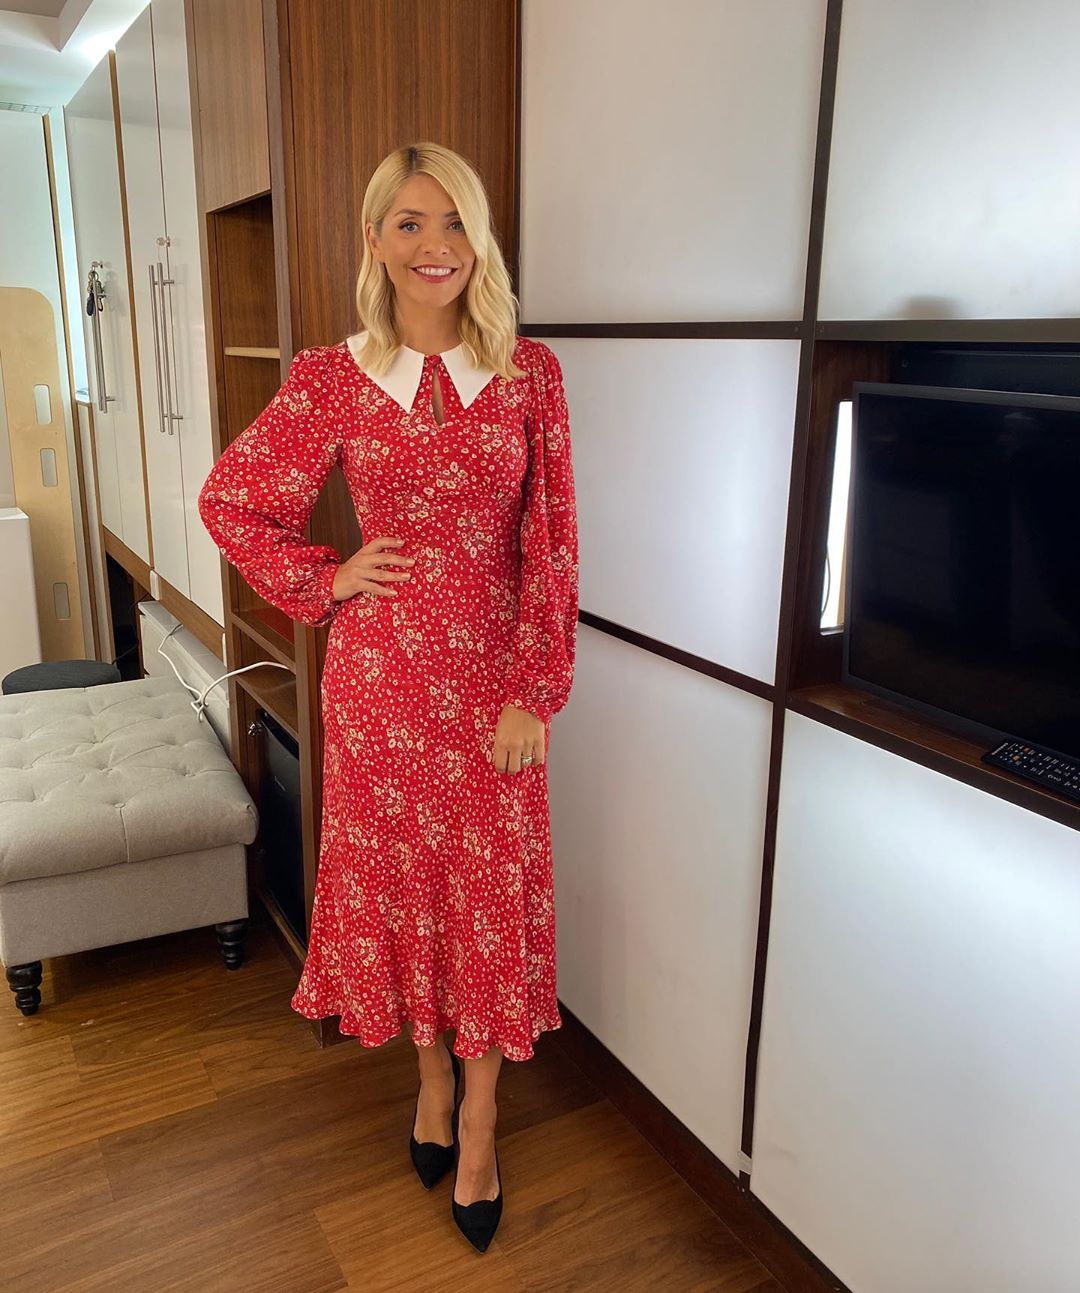 where to get all Holly Willoughby This Moring dresses red floral long sleeve dress white collar 7 September 2020 Photo Holly Willoughby